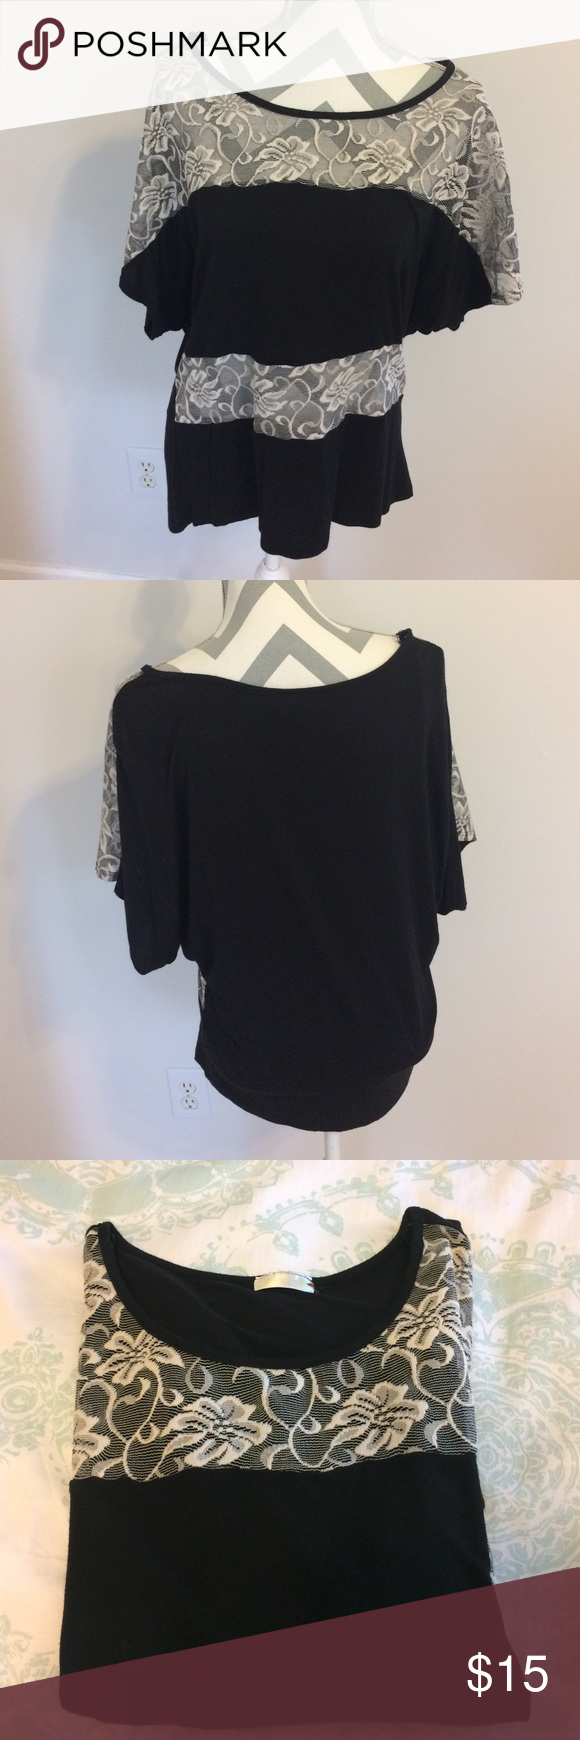 Lace Tee Black and cream colored lace tee is simple but a little sassy. Lace is see through. Not sure what the material is but it is very stretchy and roomy. Not form fitting. Bought in a boutique on vacation in FL and just never wore. Offers welcome! Tops Tees - Short Sleeve